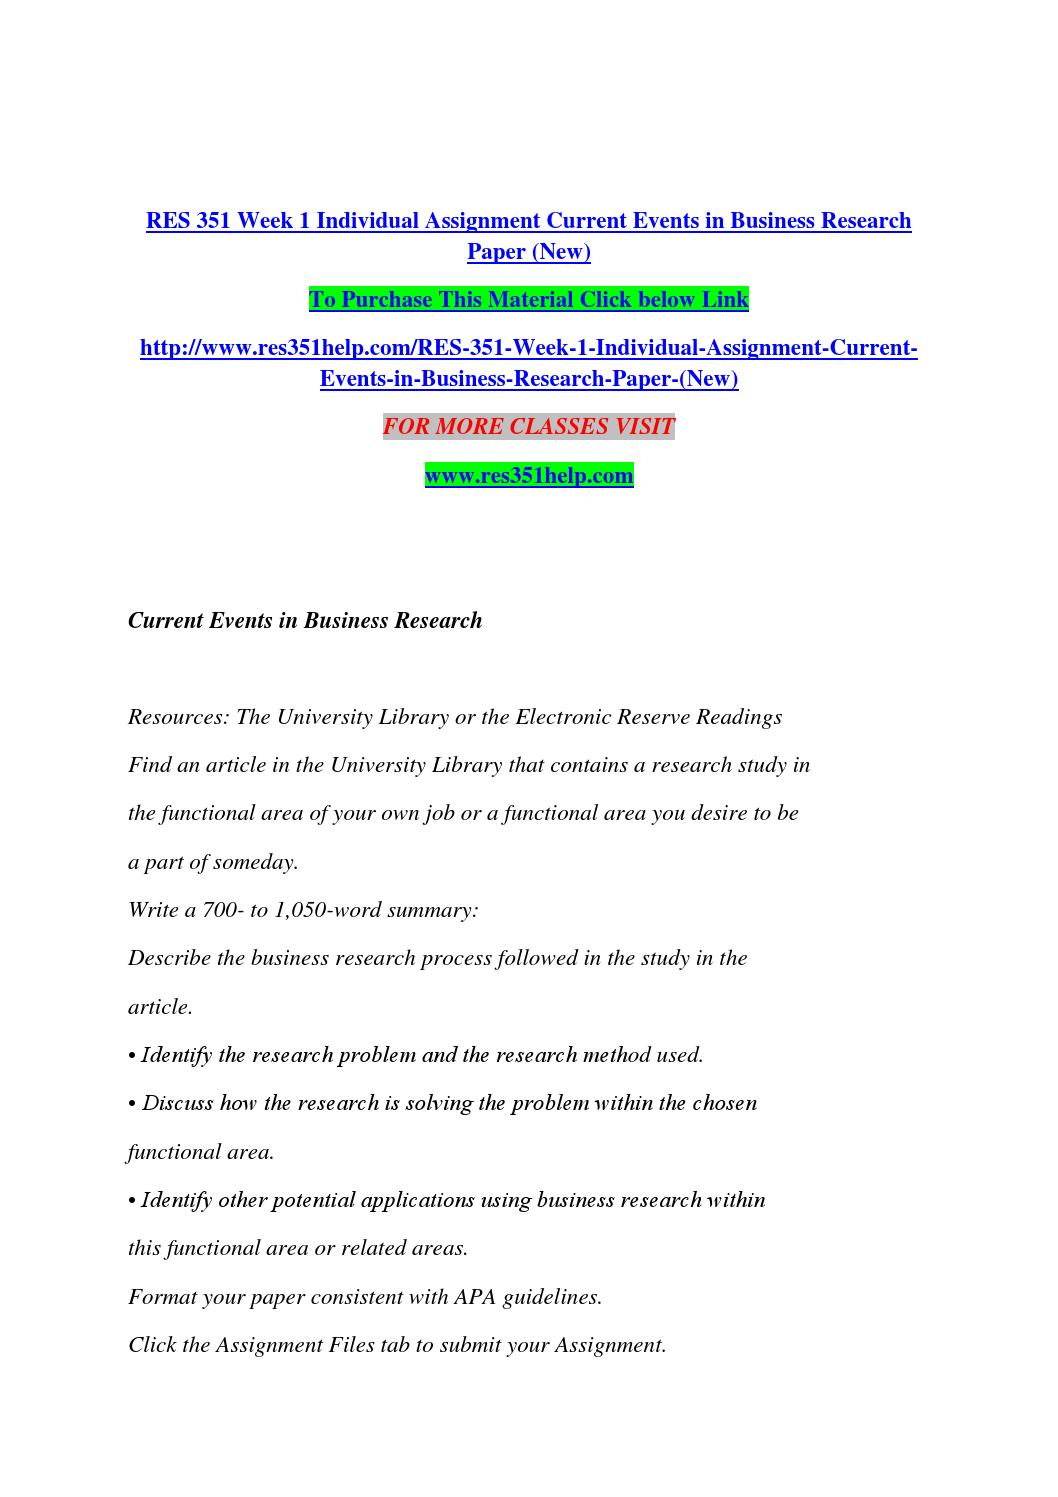 res week individual assignment current events in business res 351 week 1 individual assignment current events in business research paper new by naveencrzn20 issuu